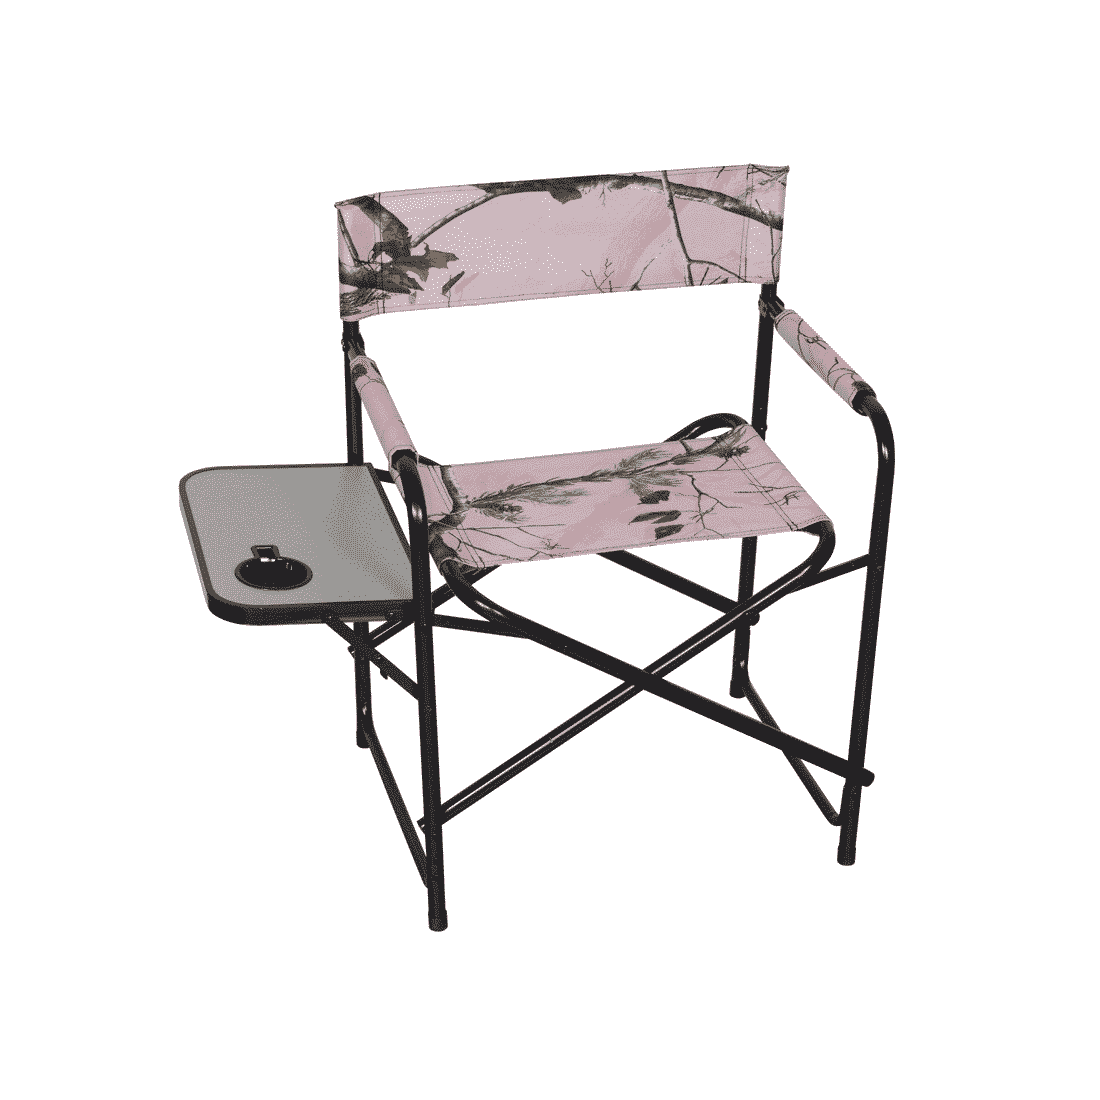 MAHCO OUTDOORS DIRECTORu0027S CHAIR u2013 PINK CAMO  sc 1 st  Northwoods Wholesale Outlet : pink directors chair - Cheerinfomania.Com